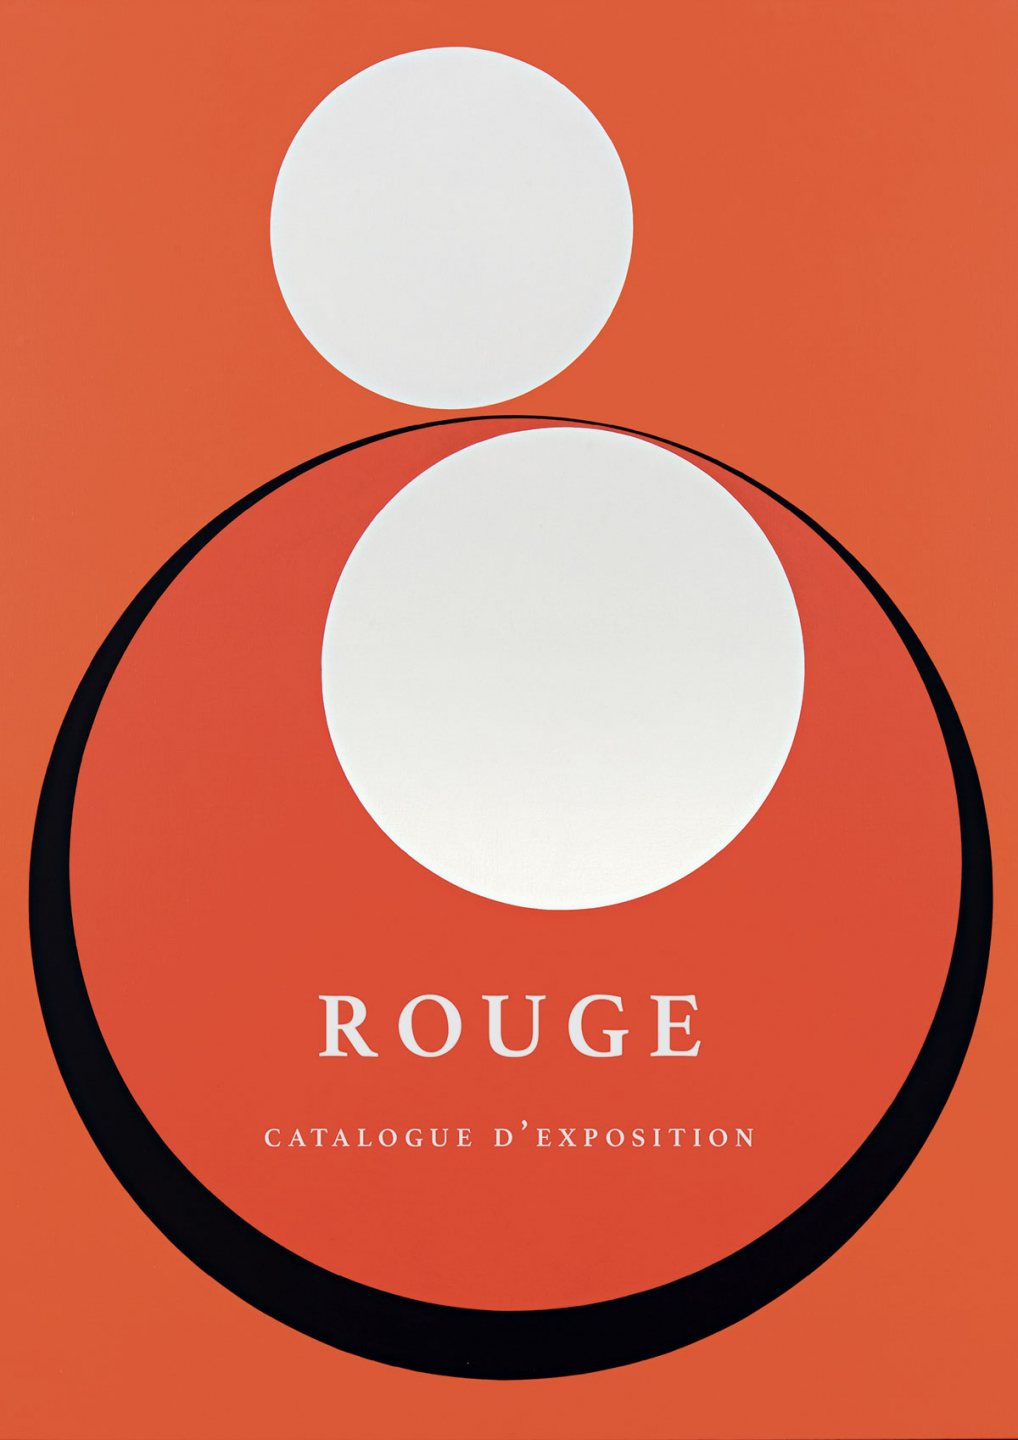 Catalogue d'exposition - ROUGE